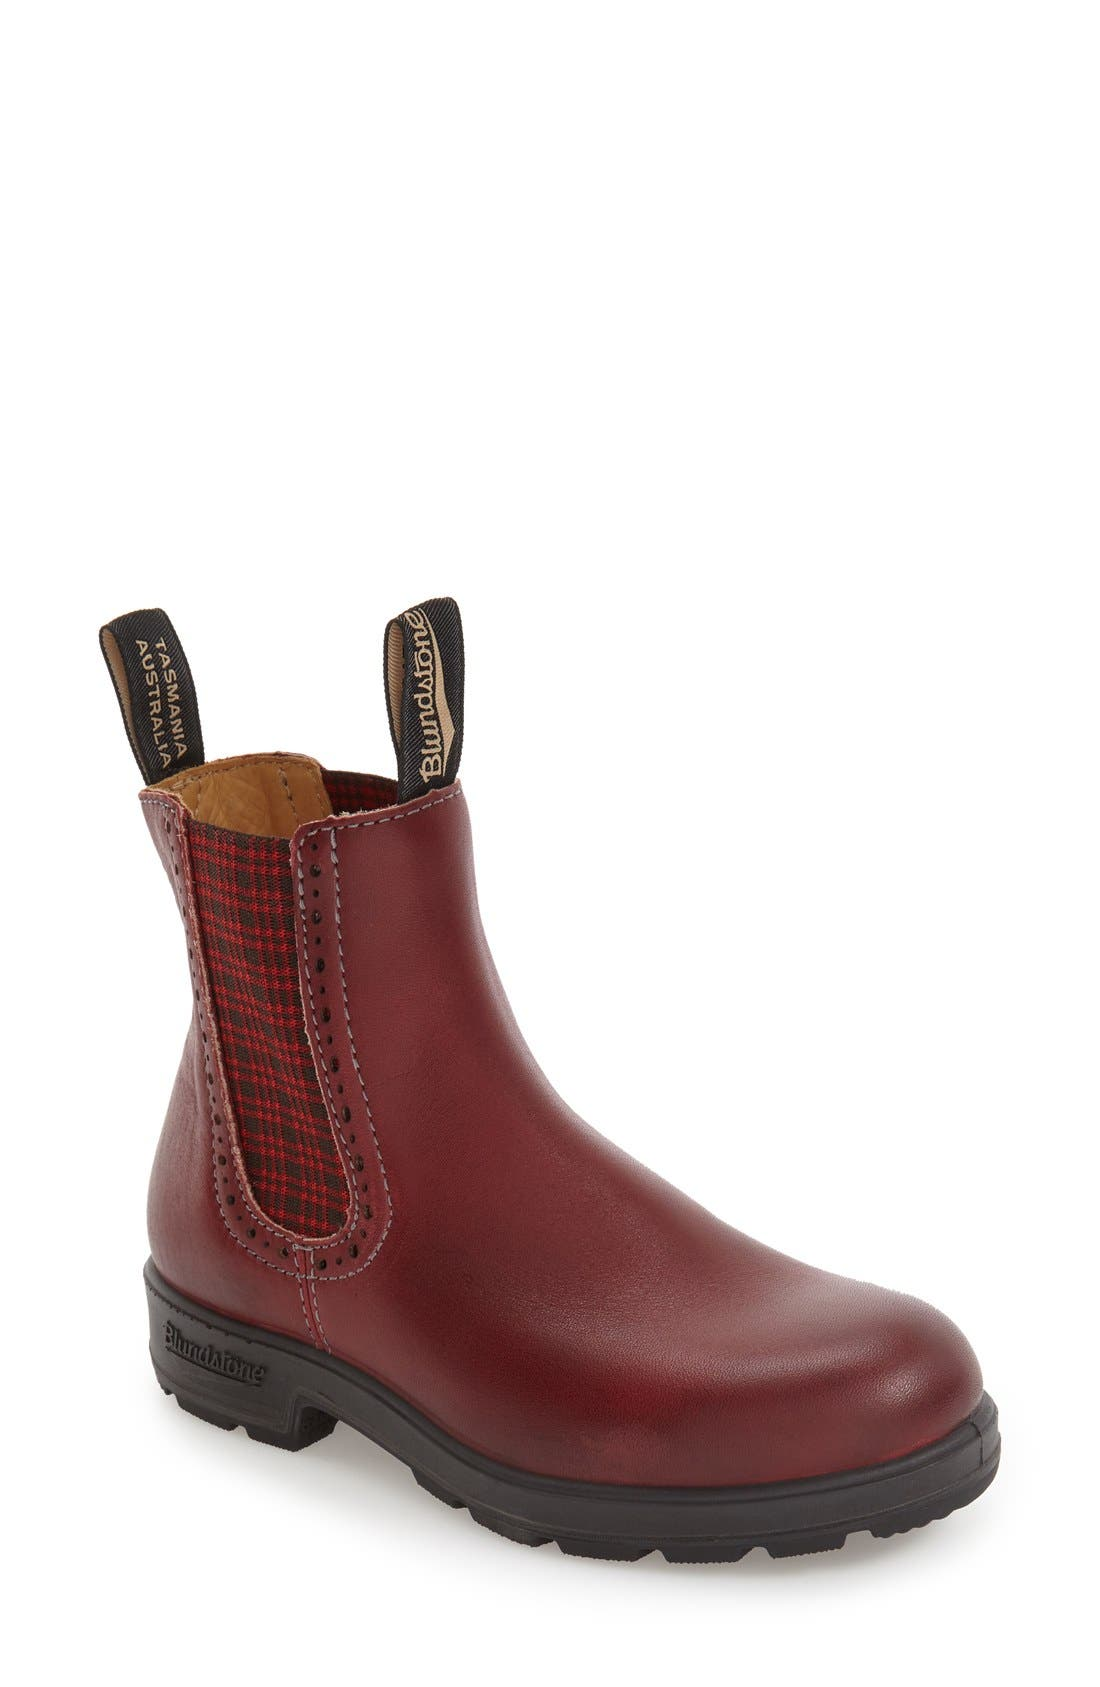 Blundstone Footwear 'Original Series' Water Resistant Chelsea Boot (Women)